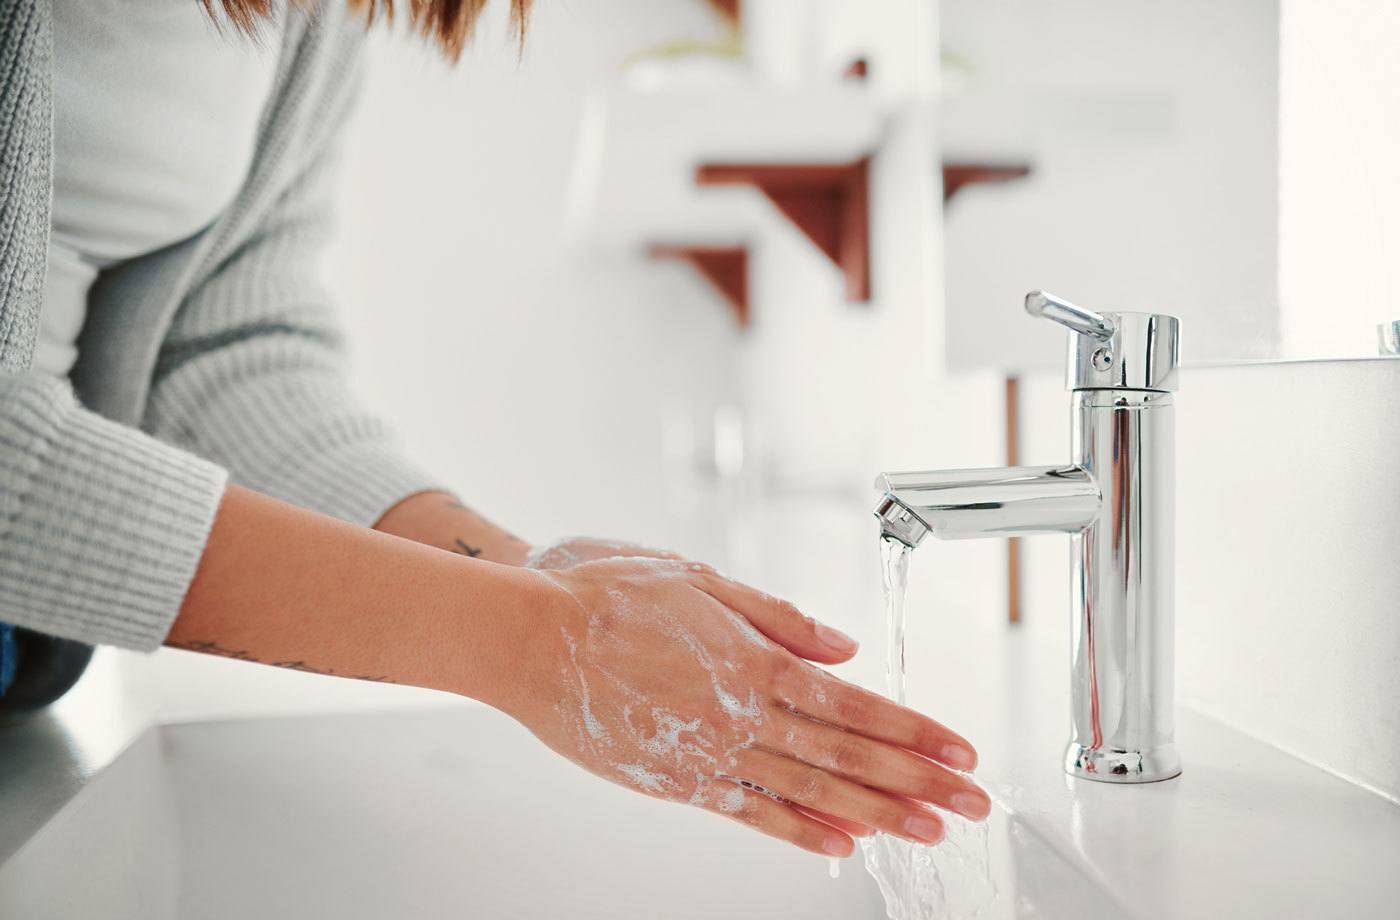 Thumbnail for It's More Important Than Ever to Wash Your Hands Frequently—Here's *Exactly* How Long It Takes to Scrub Germs Away